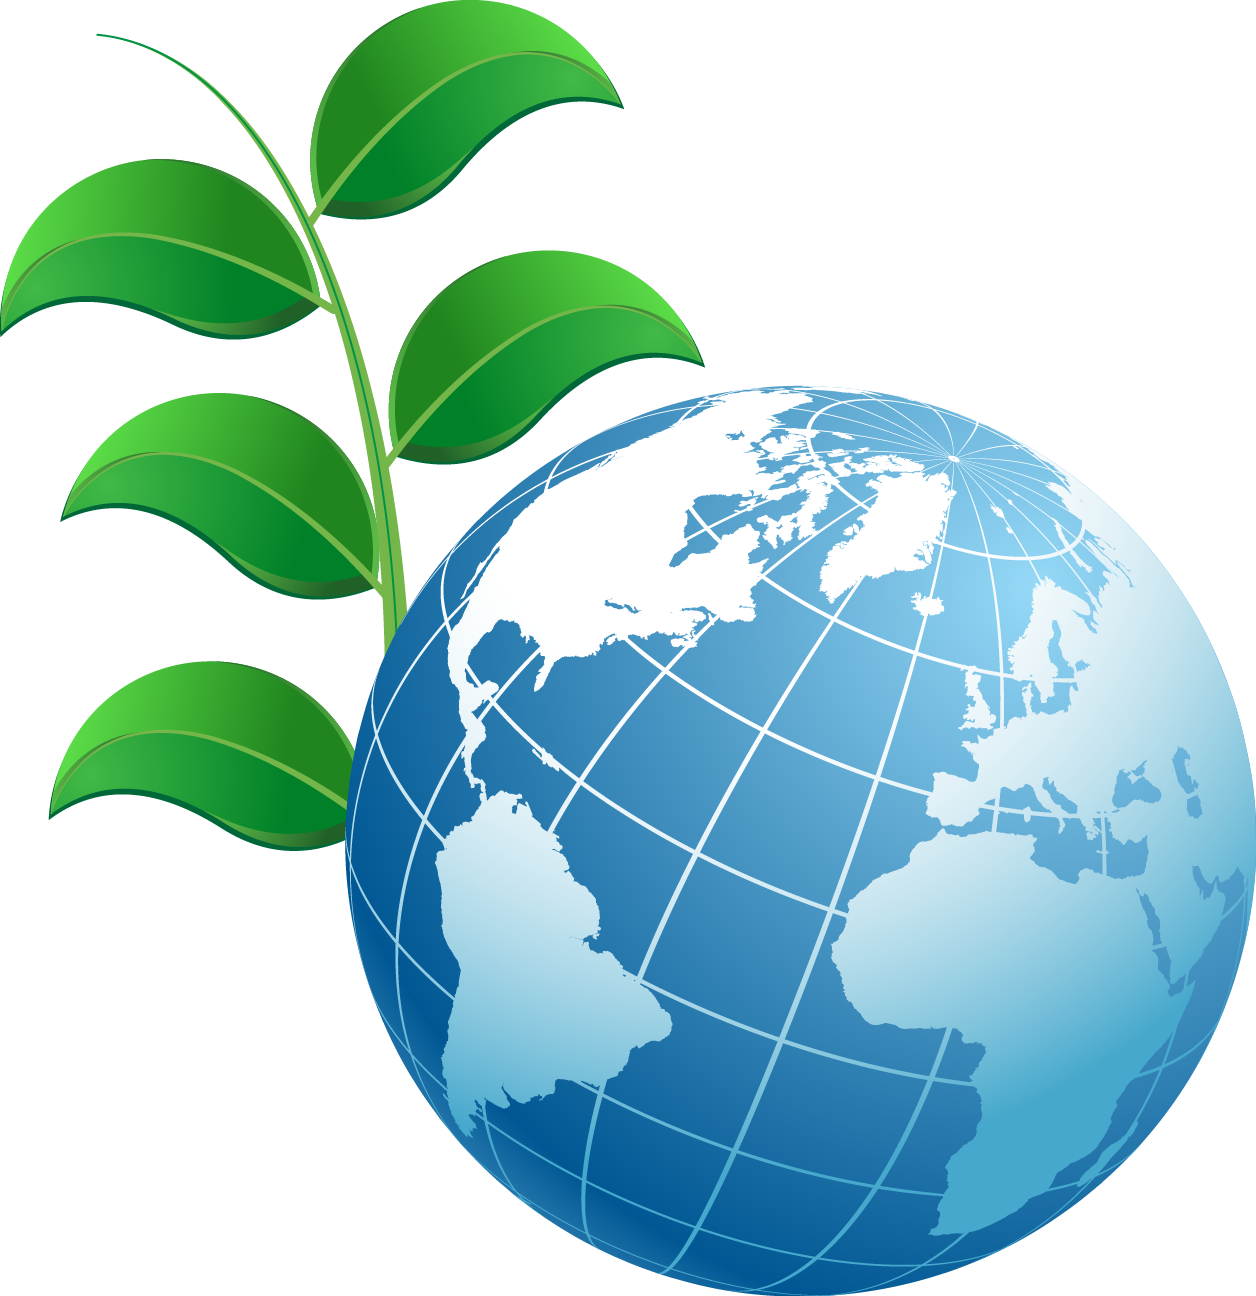 Environment clipart. Domain transparentpng